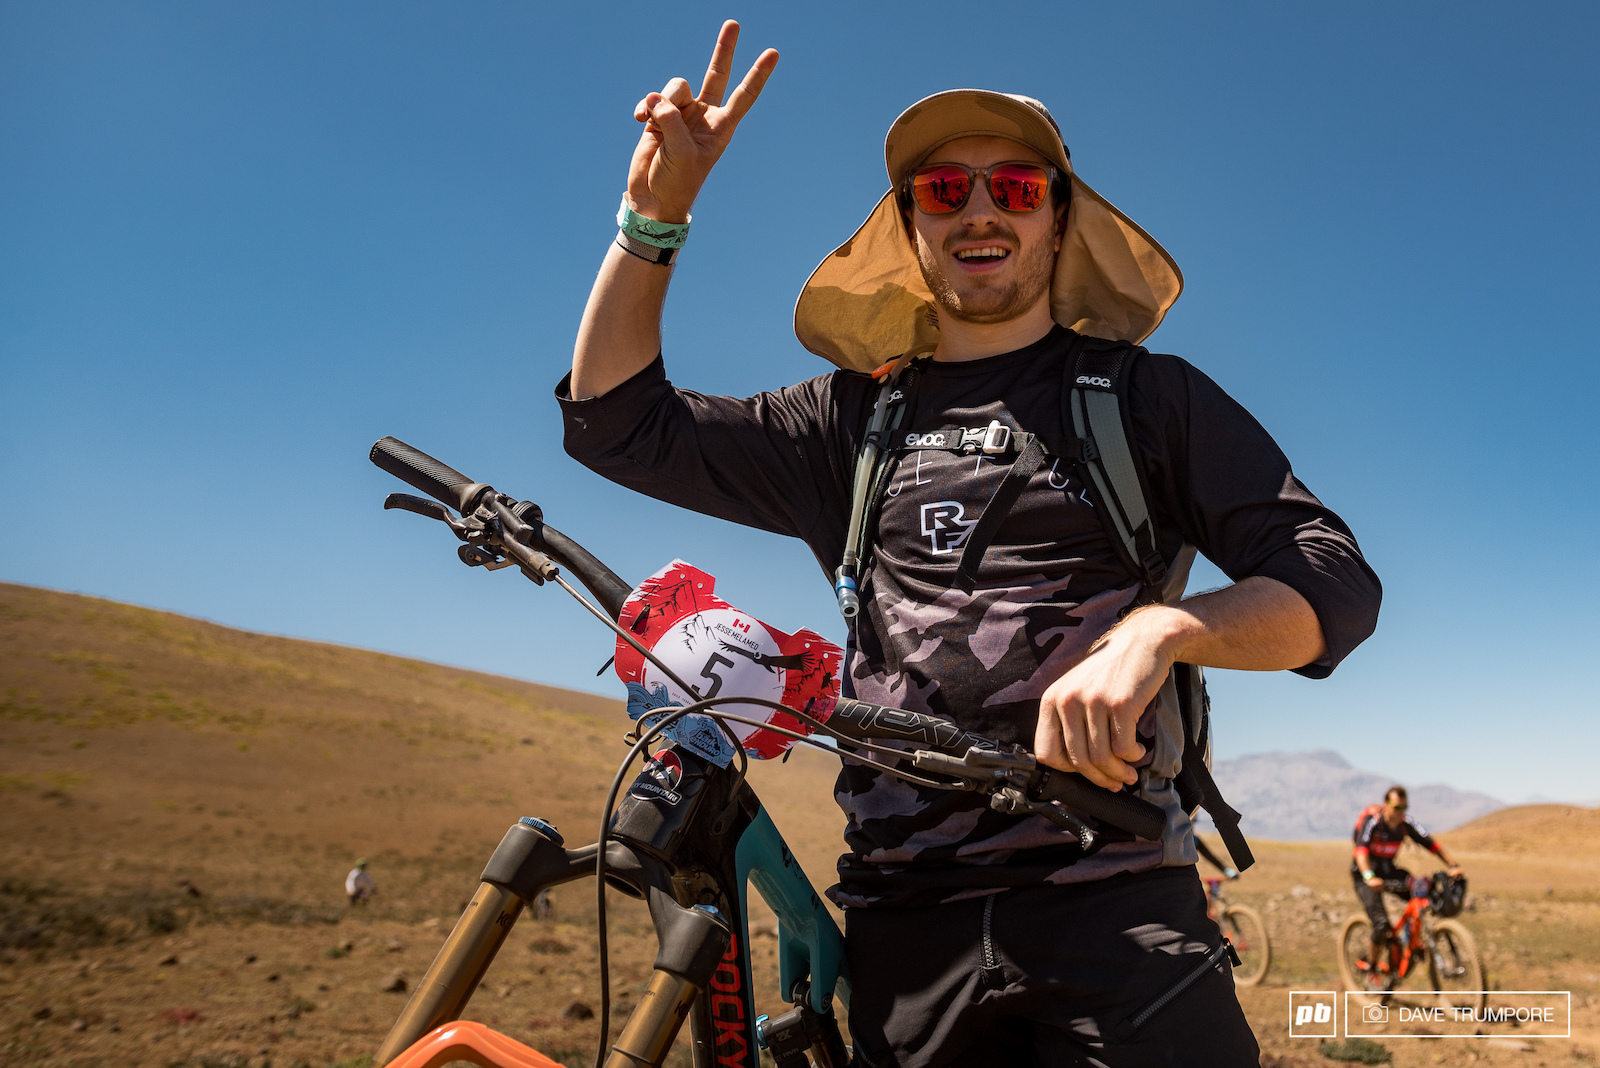 Jesse Melamed tried his hand at racing blind for the first time here at Andes Pacifico and ended day 1 in second place.